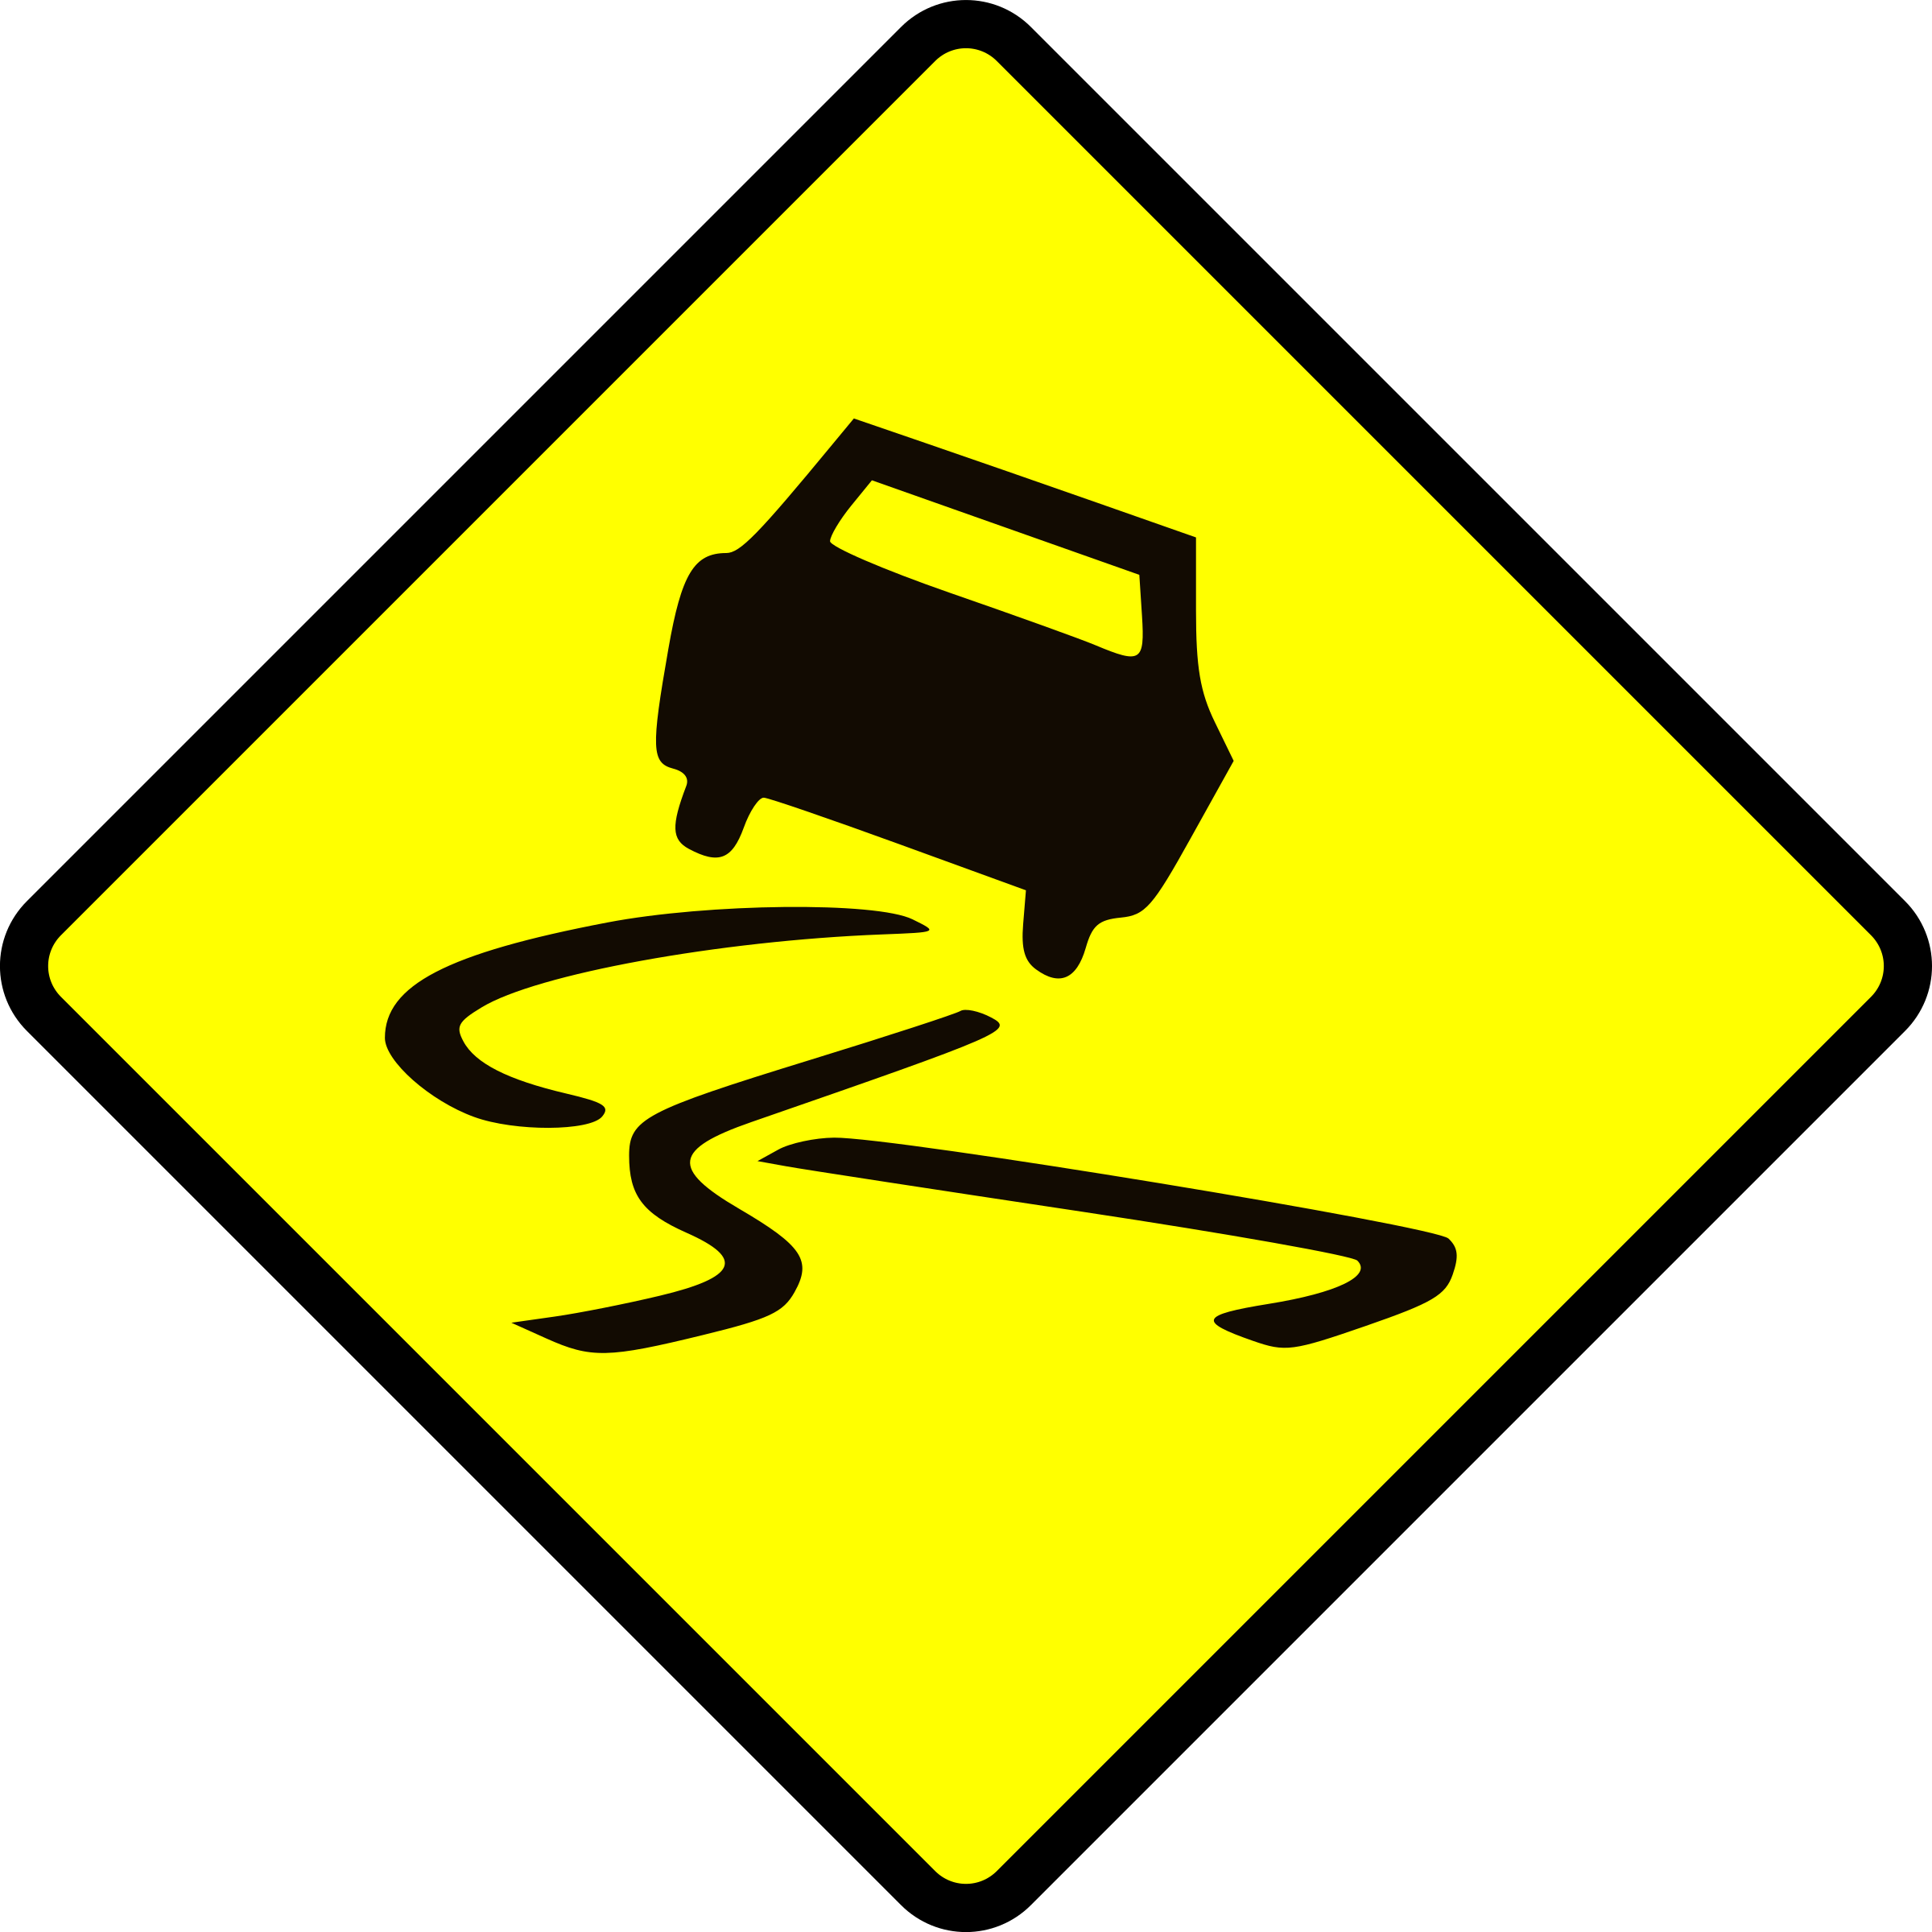 Wet clipart wet thing. Slippery when big image